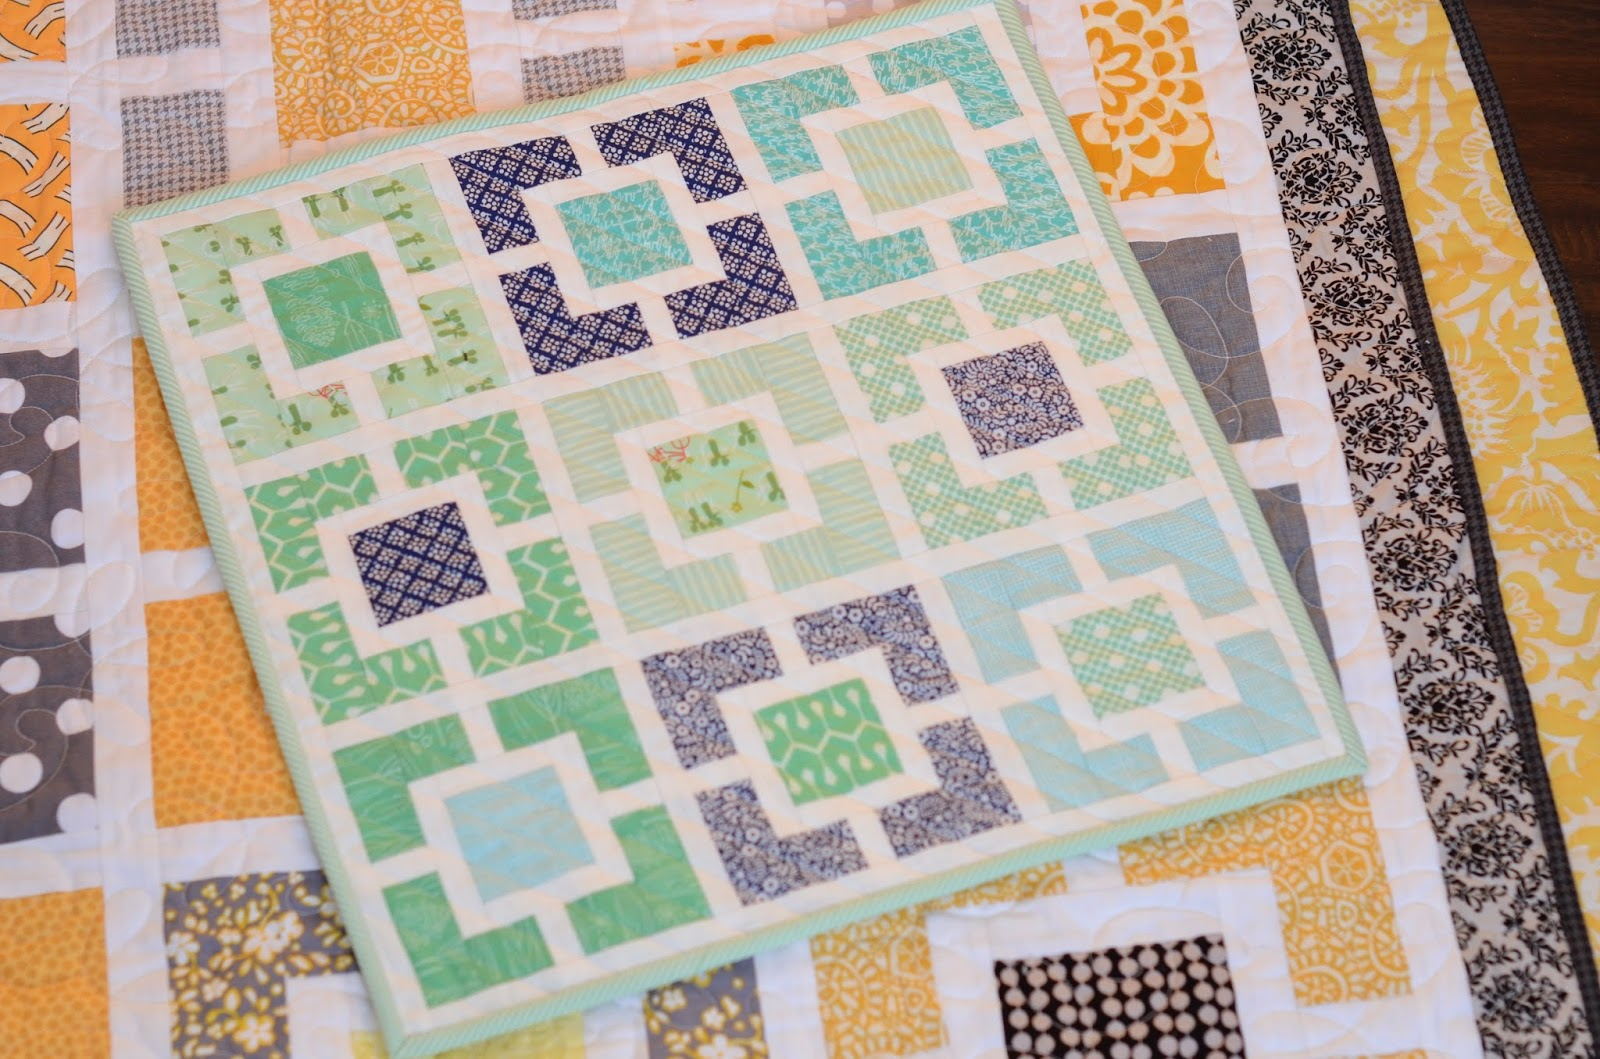 Hyacinth Quilt Designs: More Minis